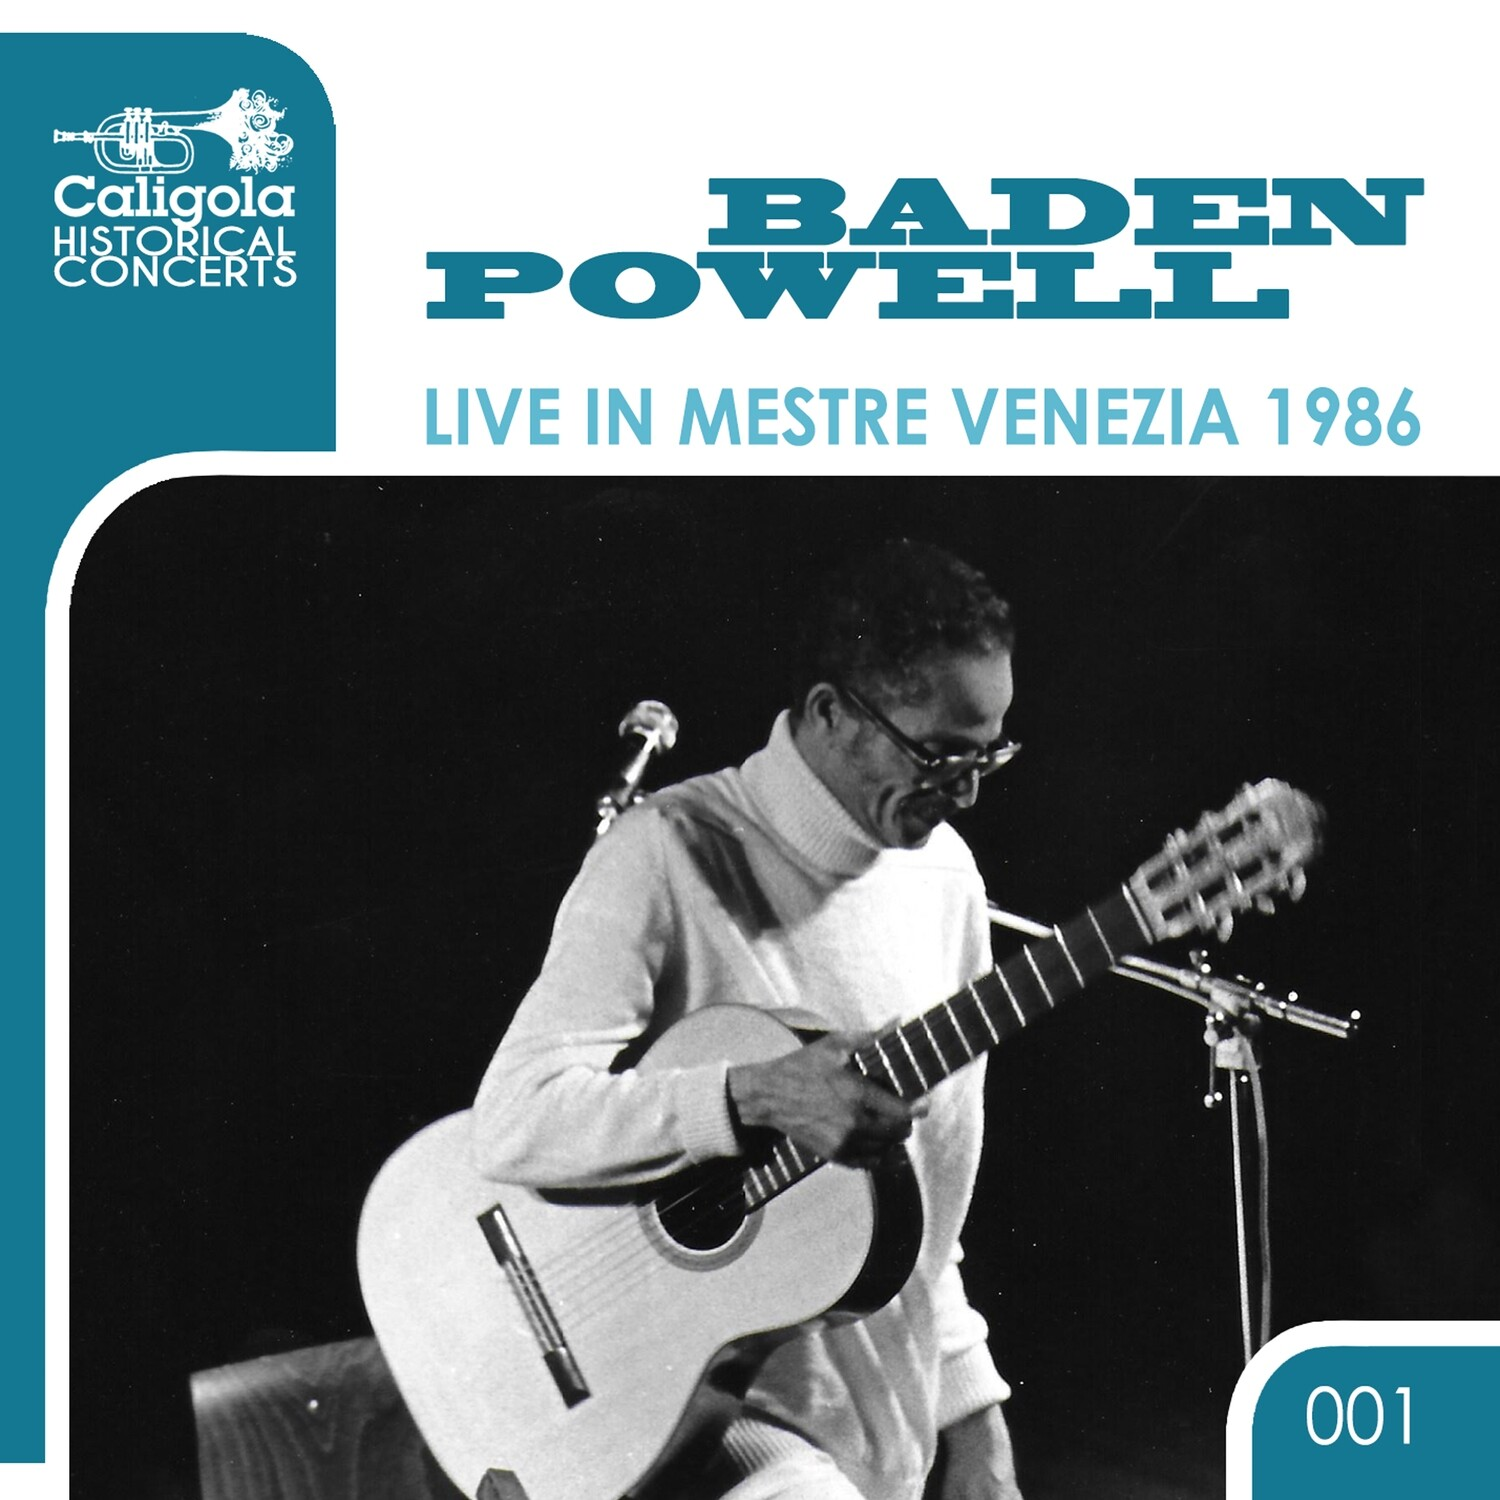 BADEN POWELL «Live in Mestre Venezia 1986» (files .wav + covers .jpeg + booklet .pdf)